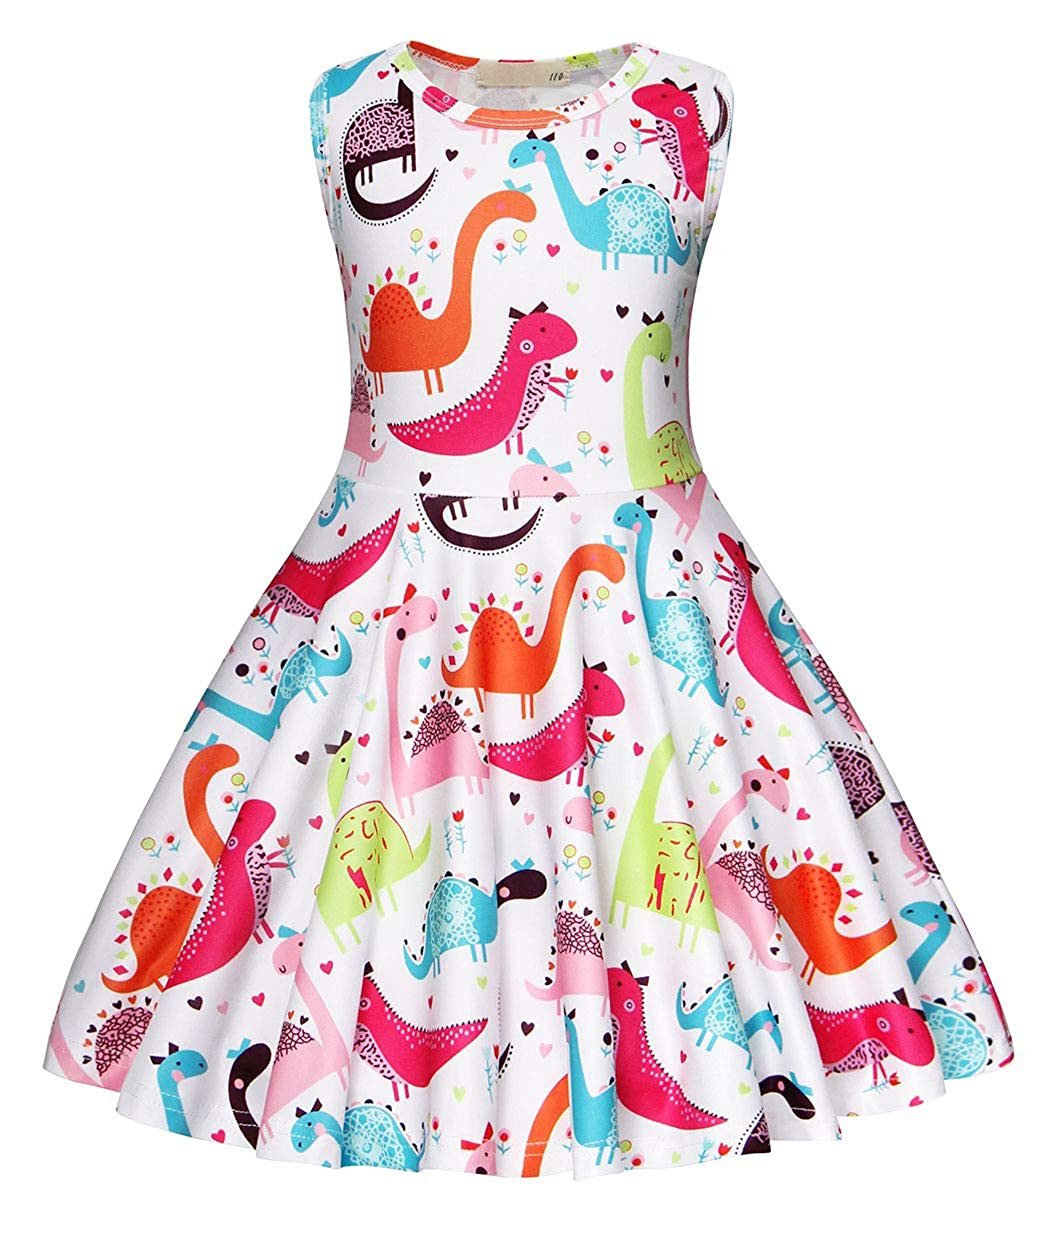 4247f84ed369 Stunning girls dinosaur dress pageant formal dance wedding party casual  dress. Cartoon dinosaur animal printed, knee-length,casual style, easy to  wear and ...